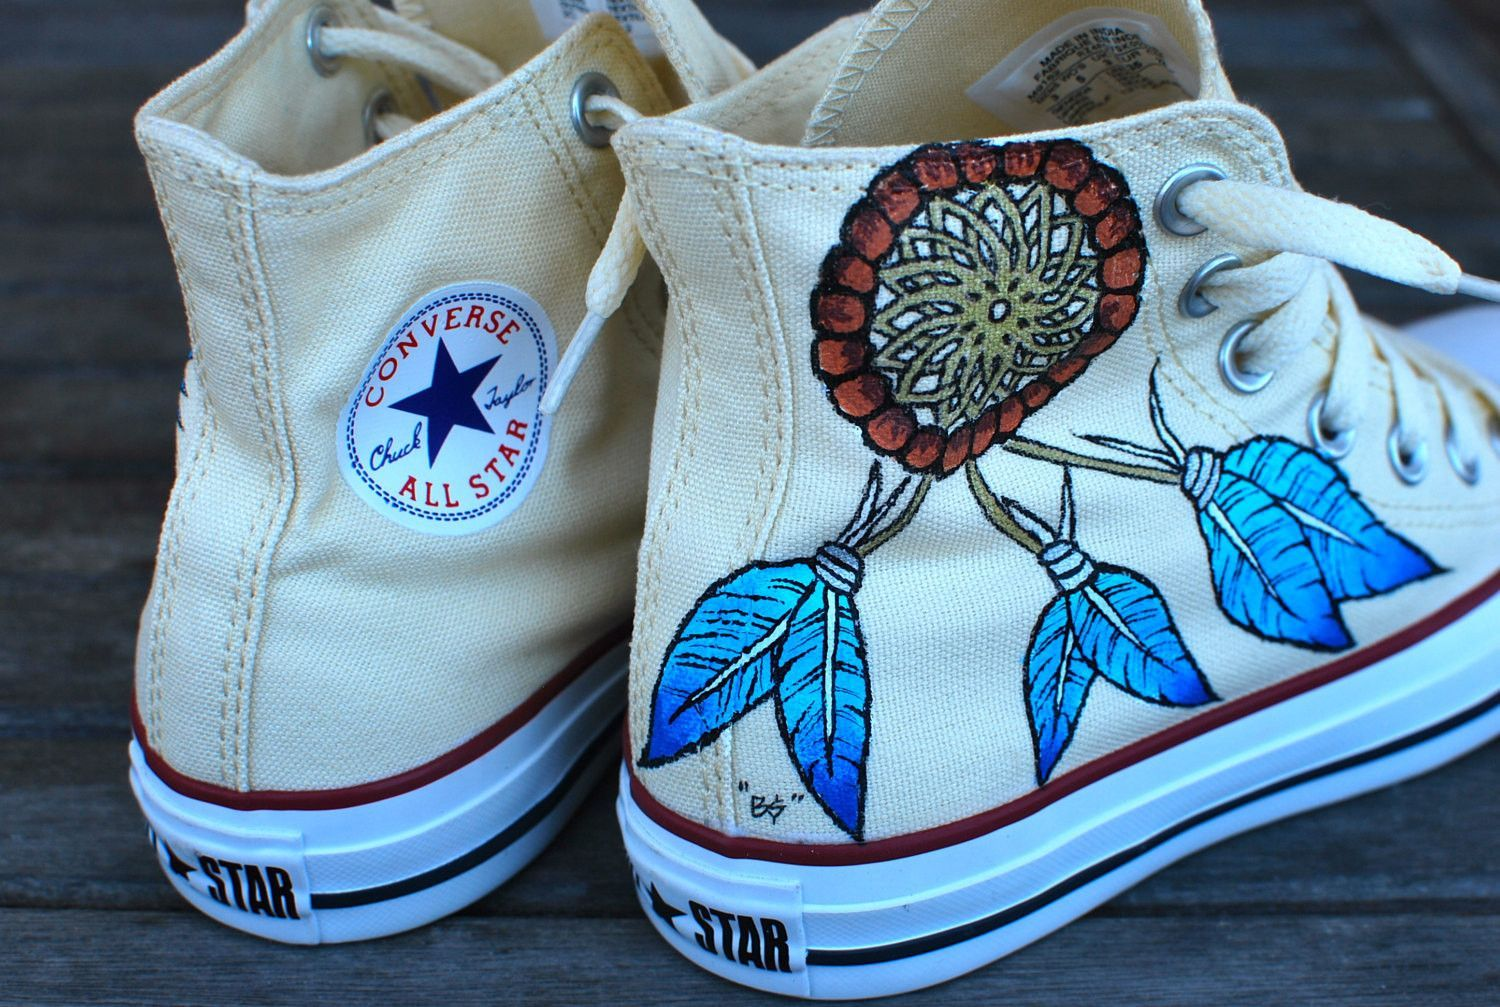 24bcc8928a2e Custom Hand Painted Converse Sneakers - Dream Catcher and Indian Chief with  headdress on Chuck Taylor Hi tops - customizable